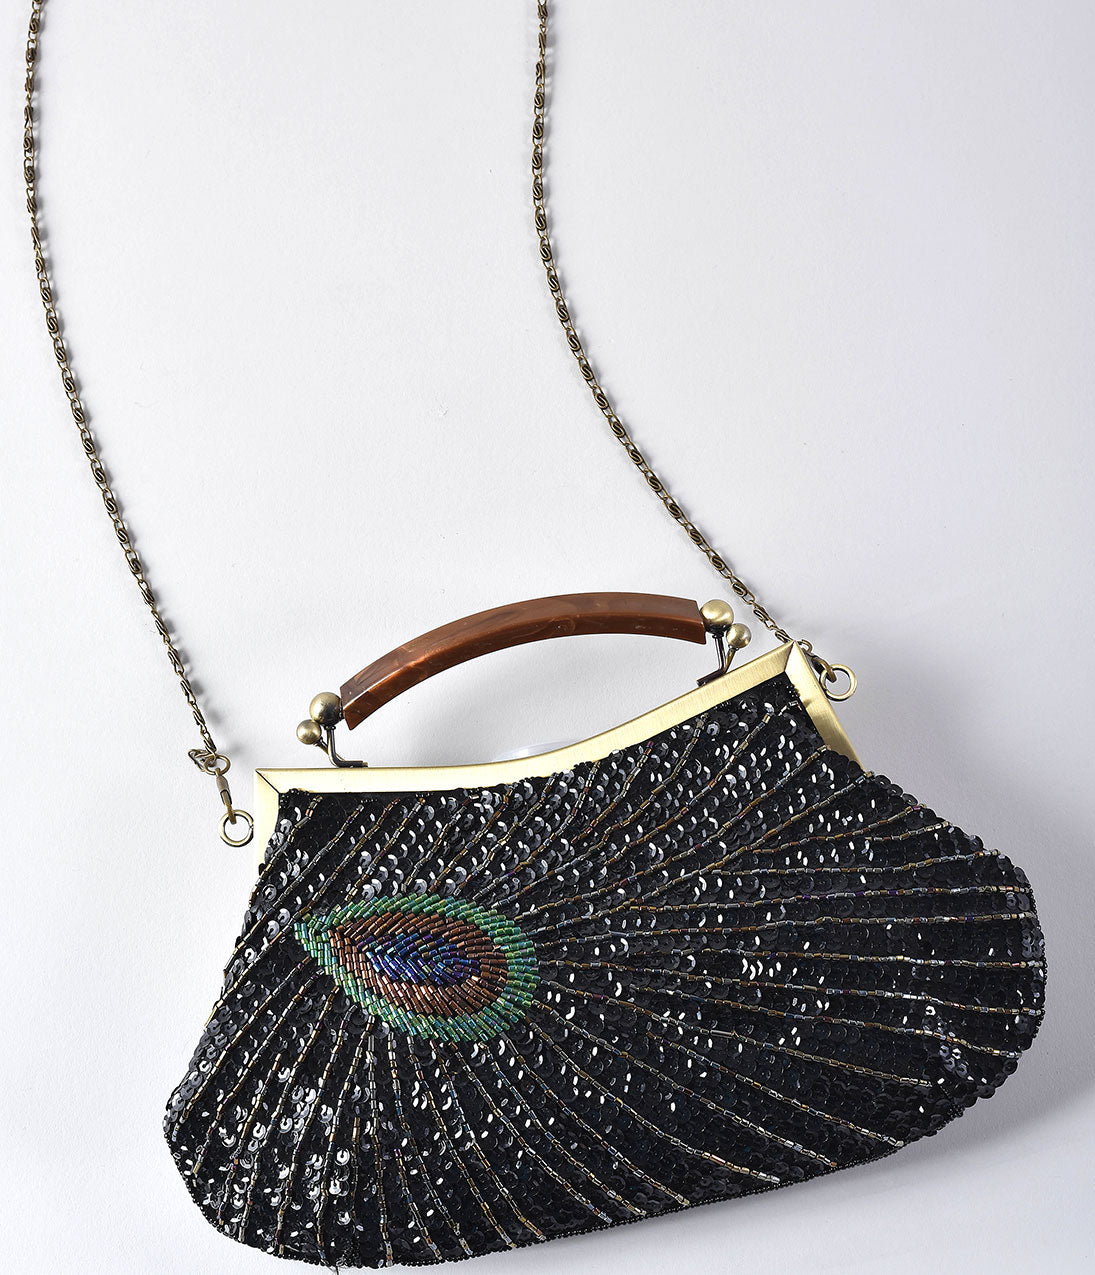 1920s Handbags, Purses, and Shopping Bag Styles Unique Vintage 1920S Style Black Peacock Sequin Flapper Handbag $62.00 AT vintagedancer.com